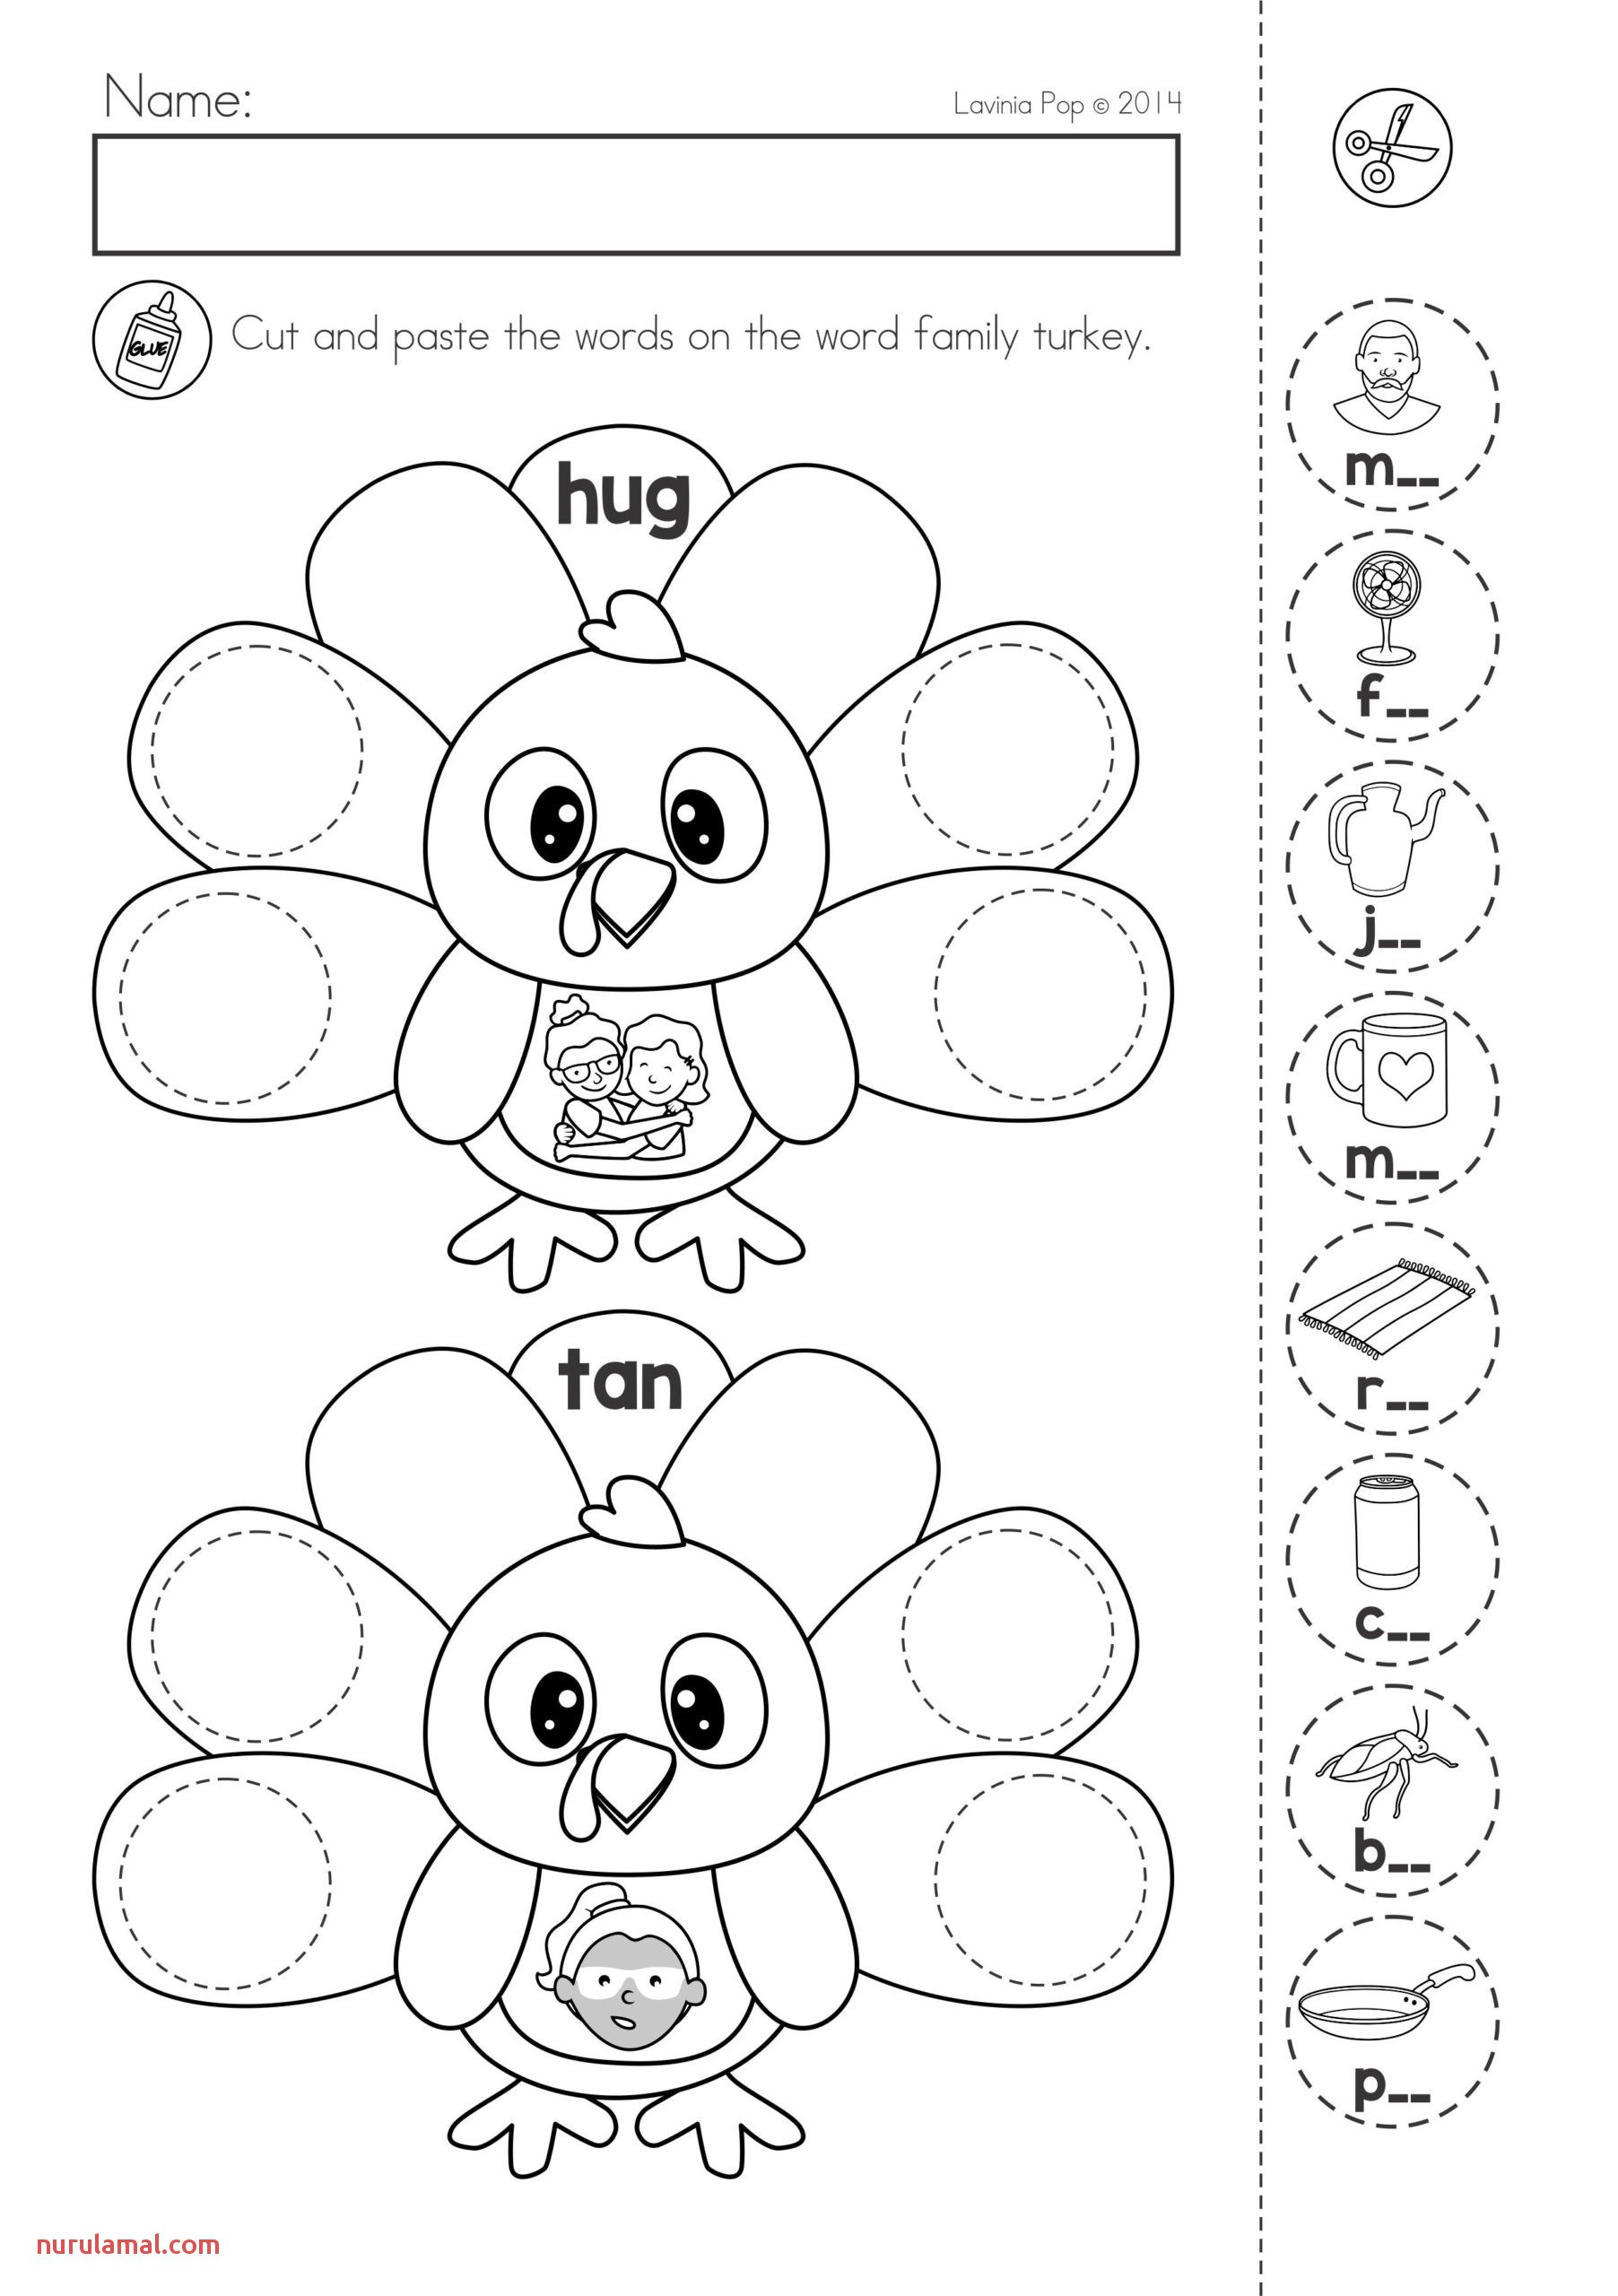 Worksheets Urdu Jor Tor Tracing Shapes Pdf For Kids In